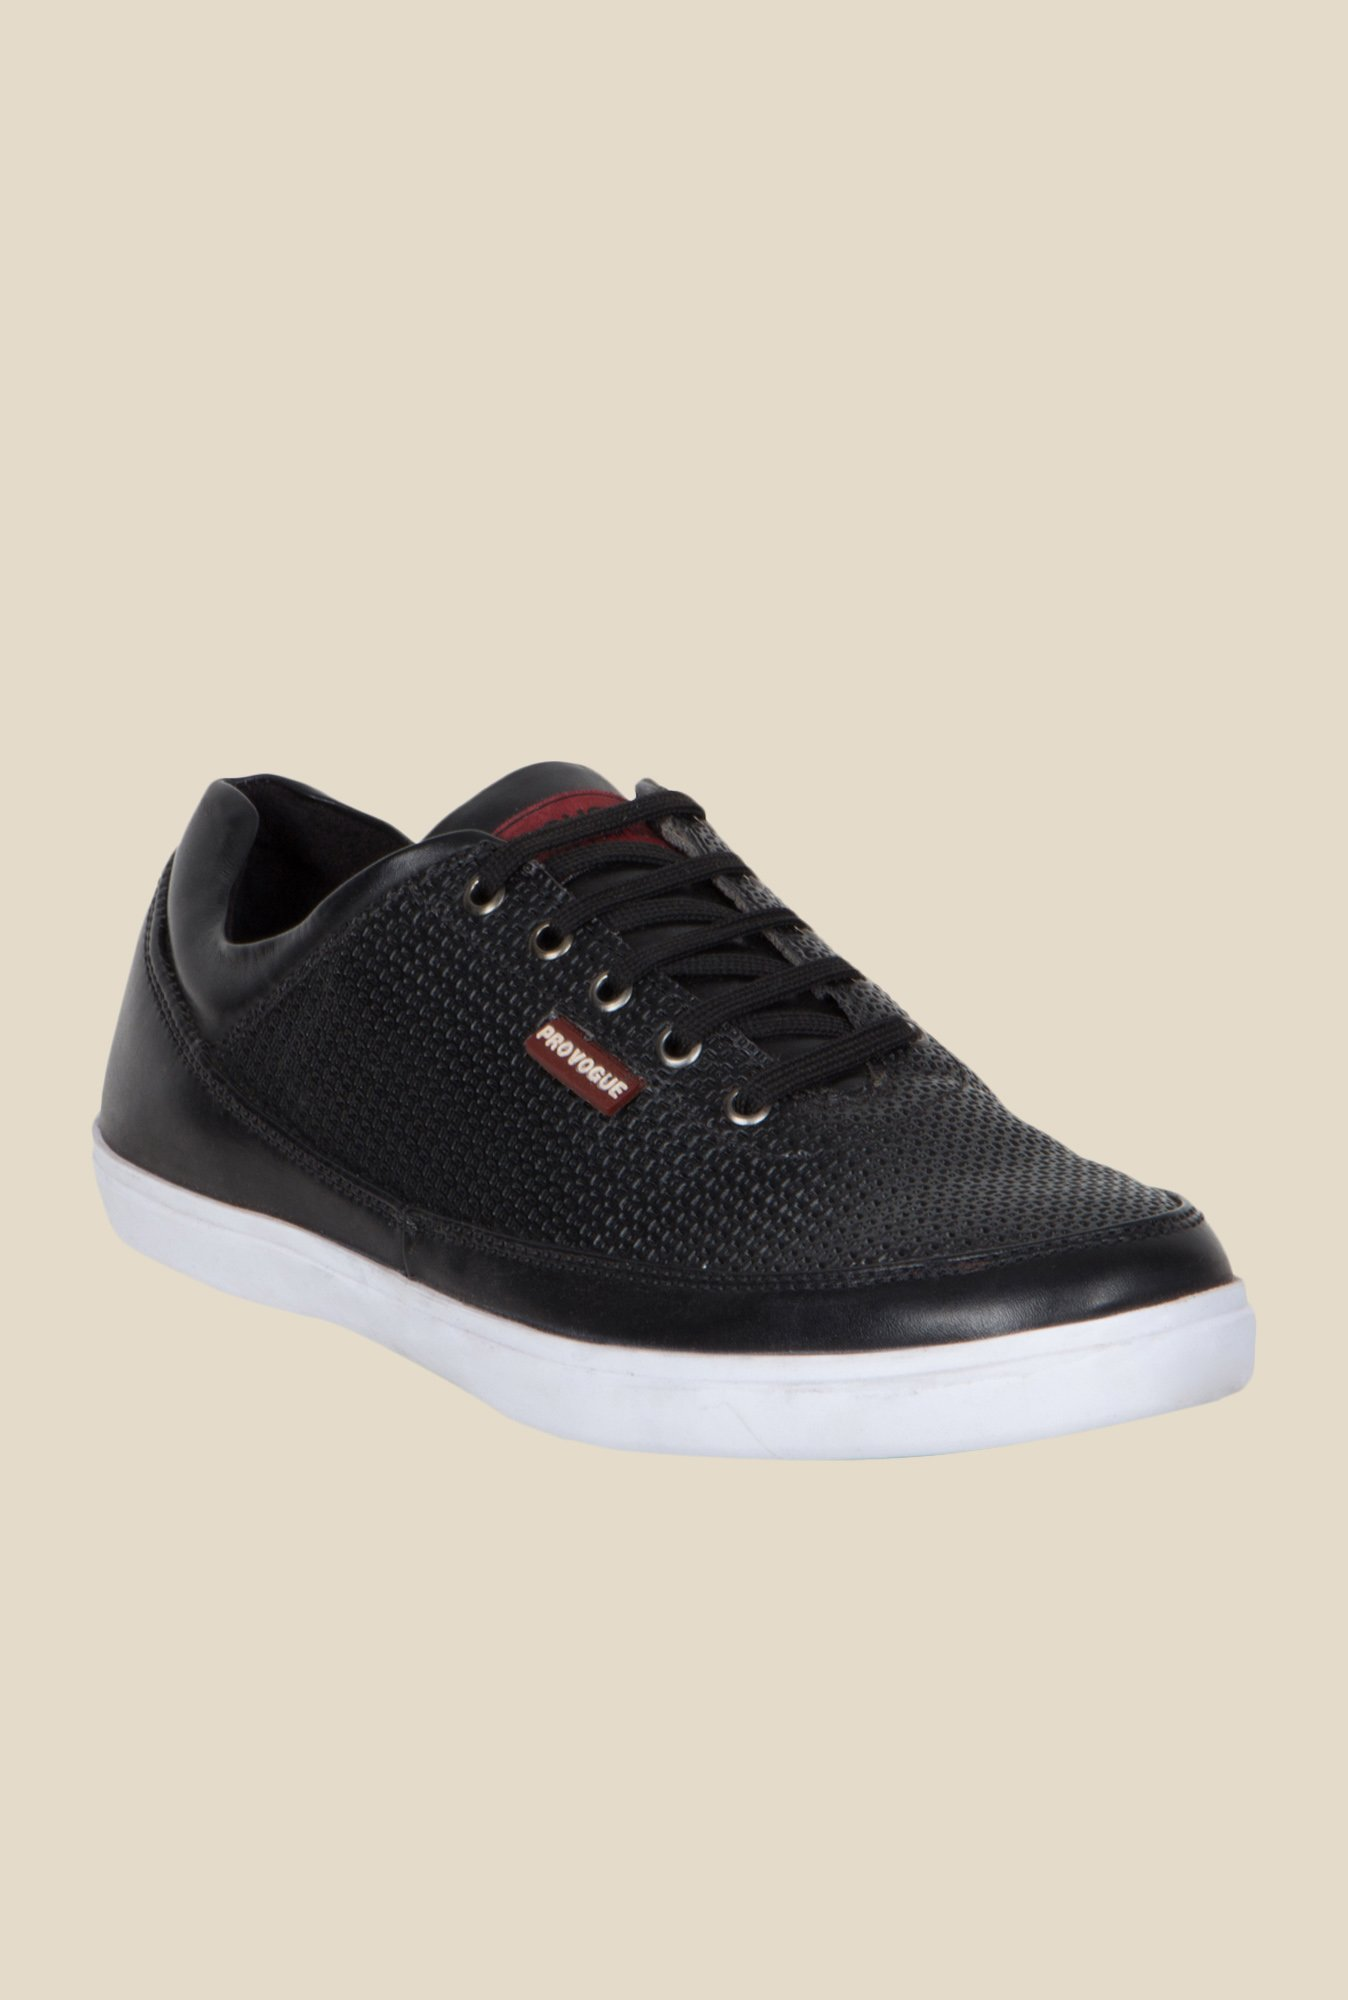 Provogue Black & White Plimsolls